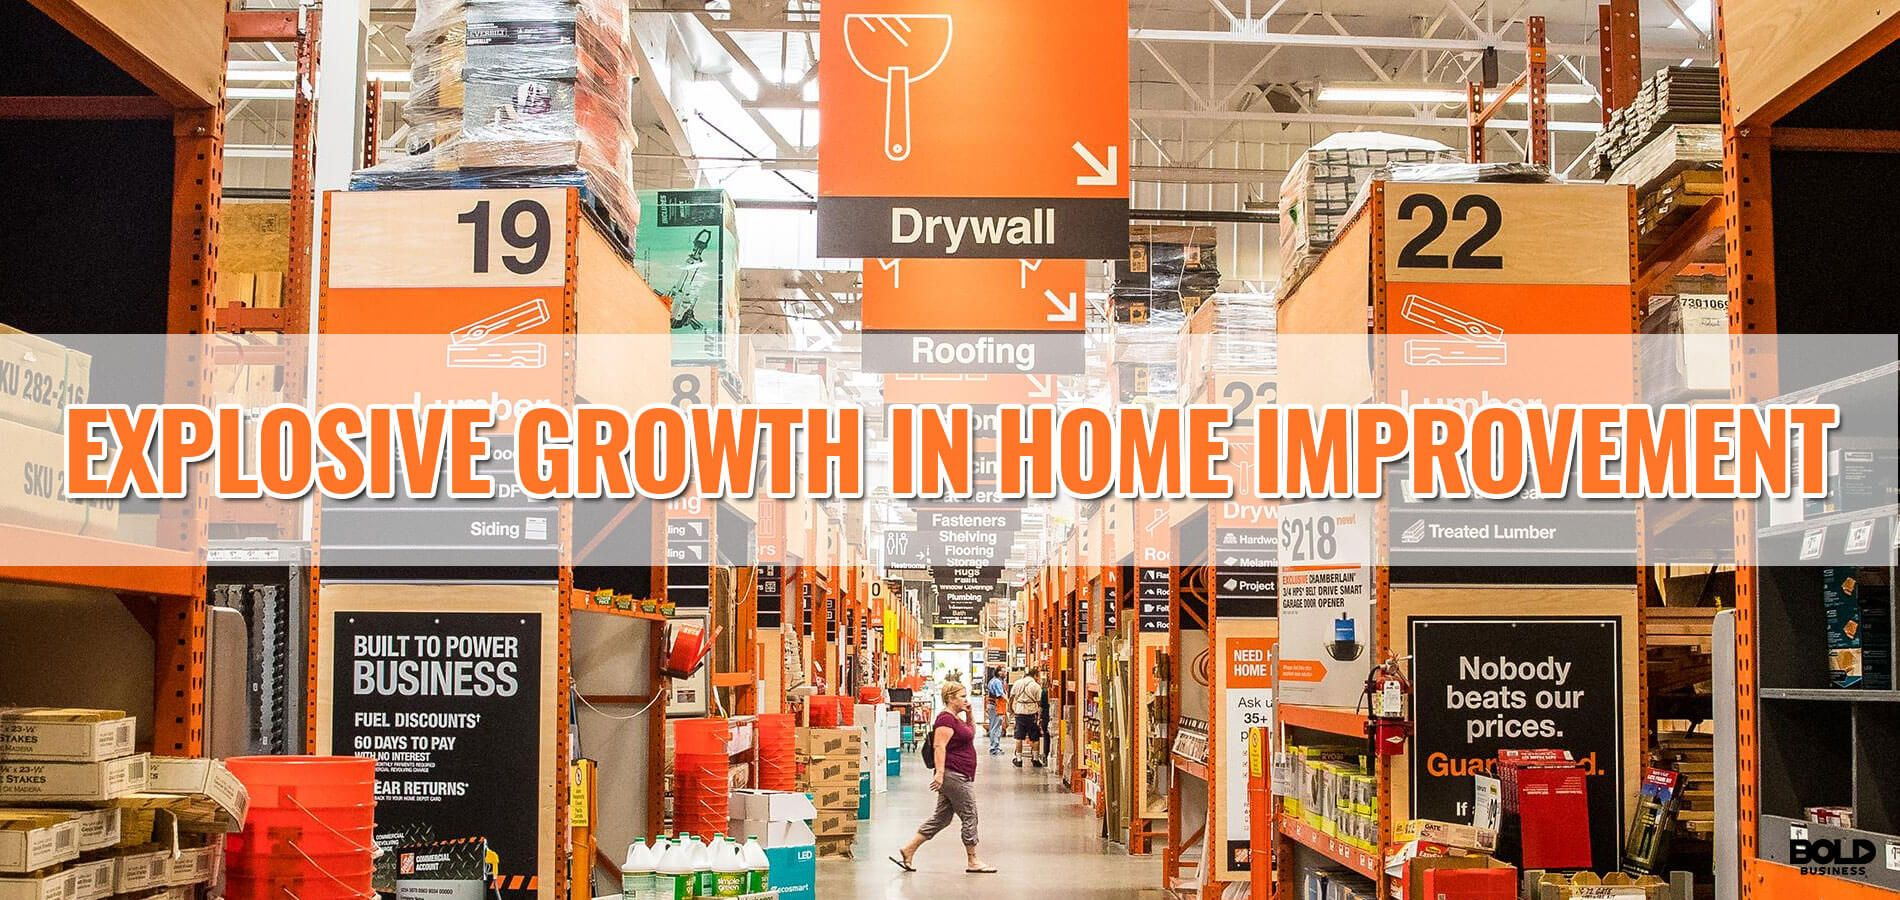 Explosive growth In Home Improvement